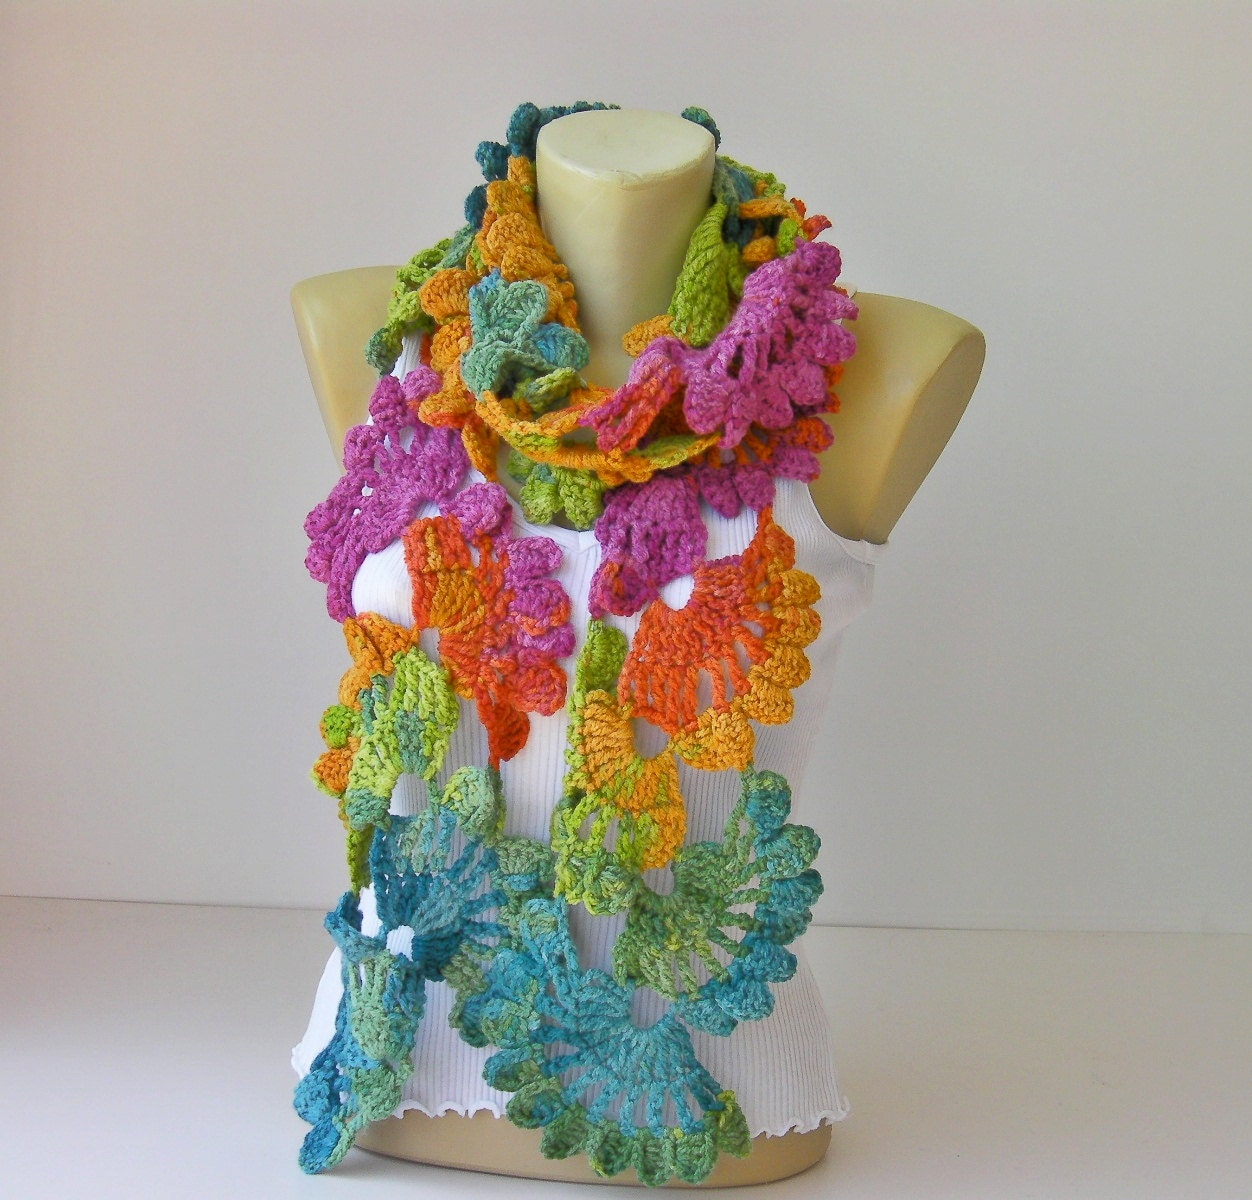 Crochet scarf rainbow colors scarf woman scarf gift by SenaShop Crochet Scarf Two Colors